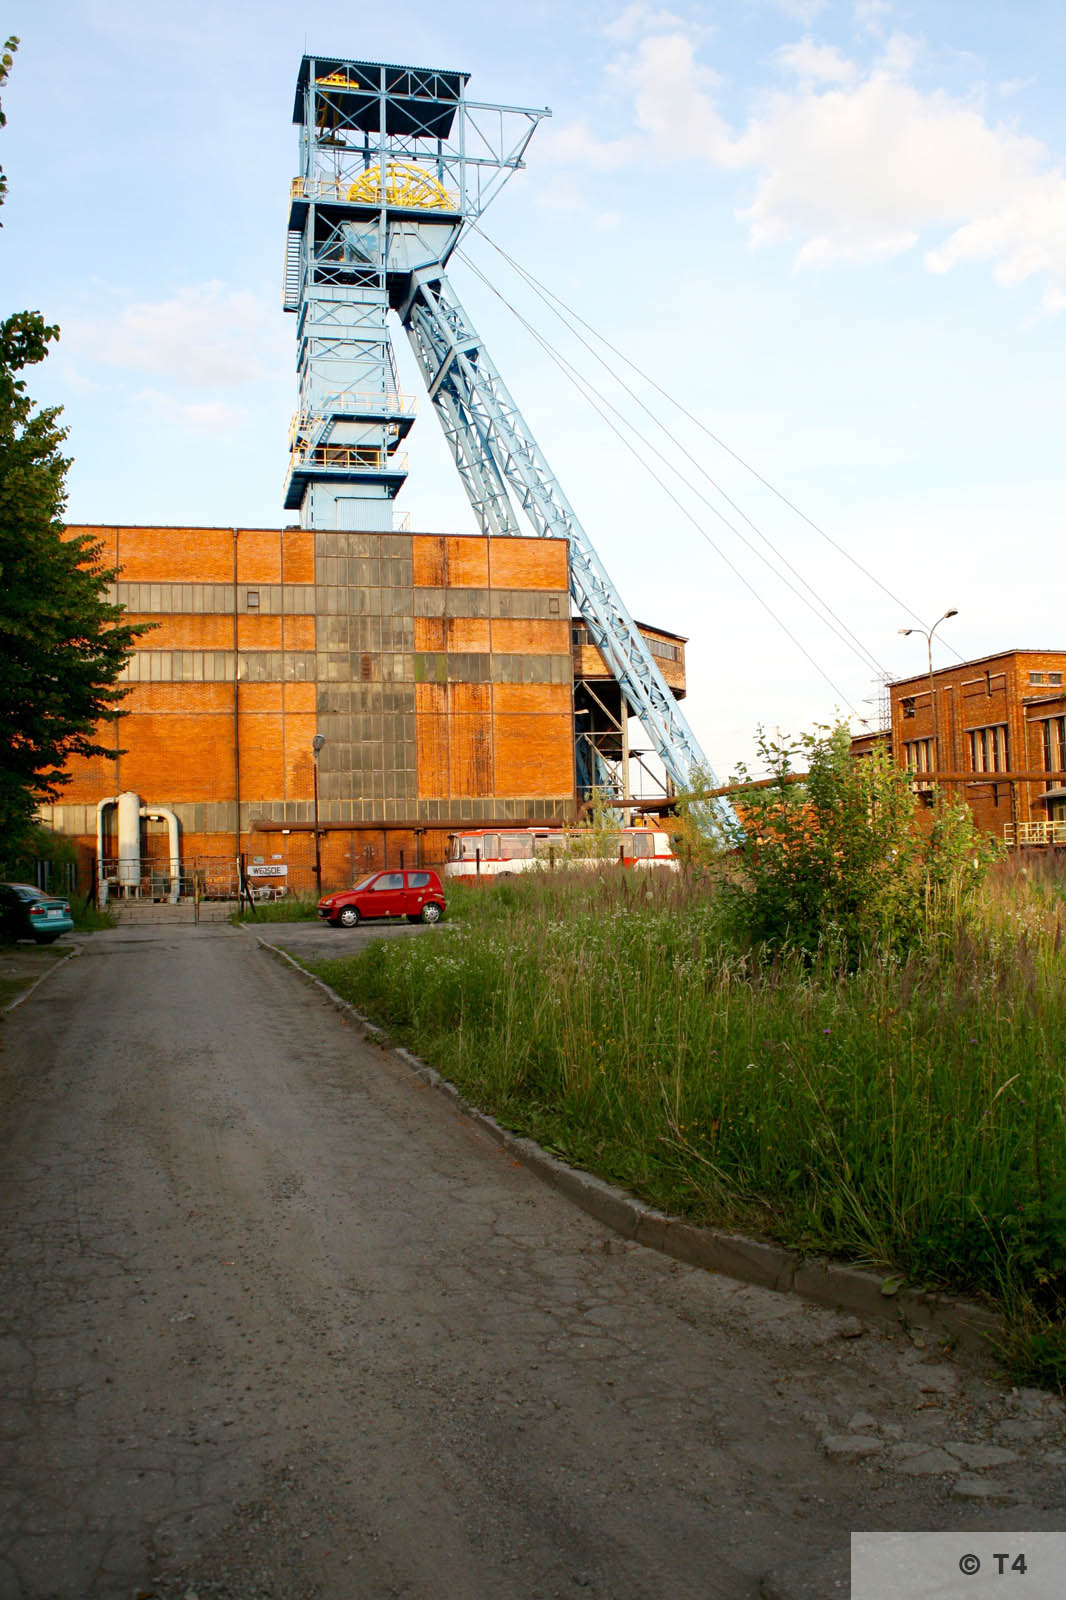 Andrzej III mine shaft in Jawiszowice. Hoisting tower. Engine hall on the right. 2007 T4 9051